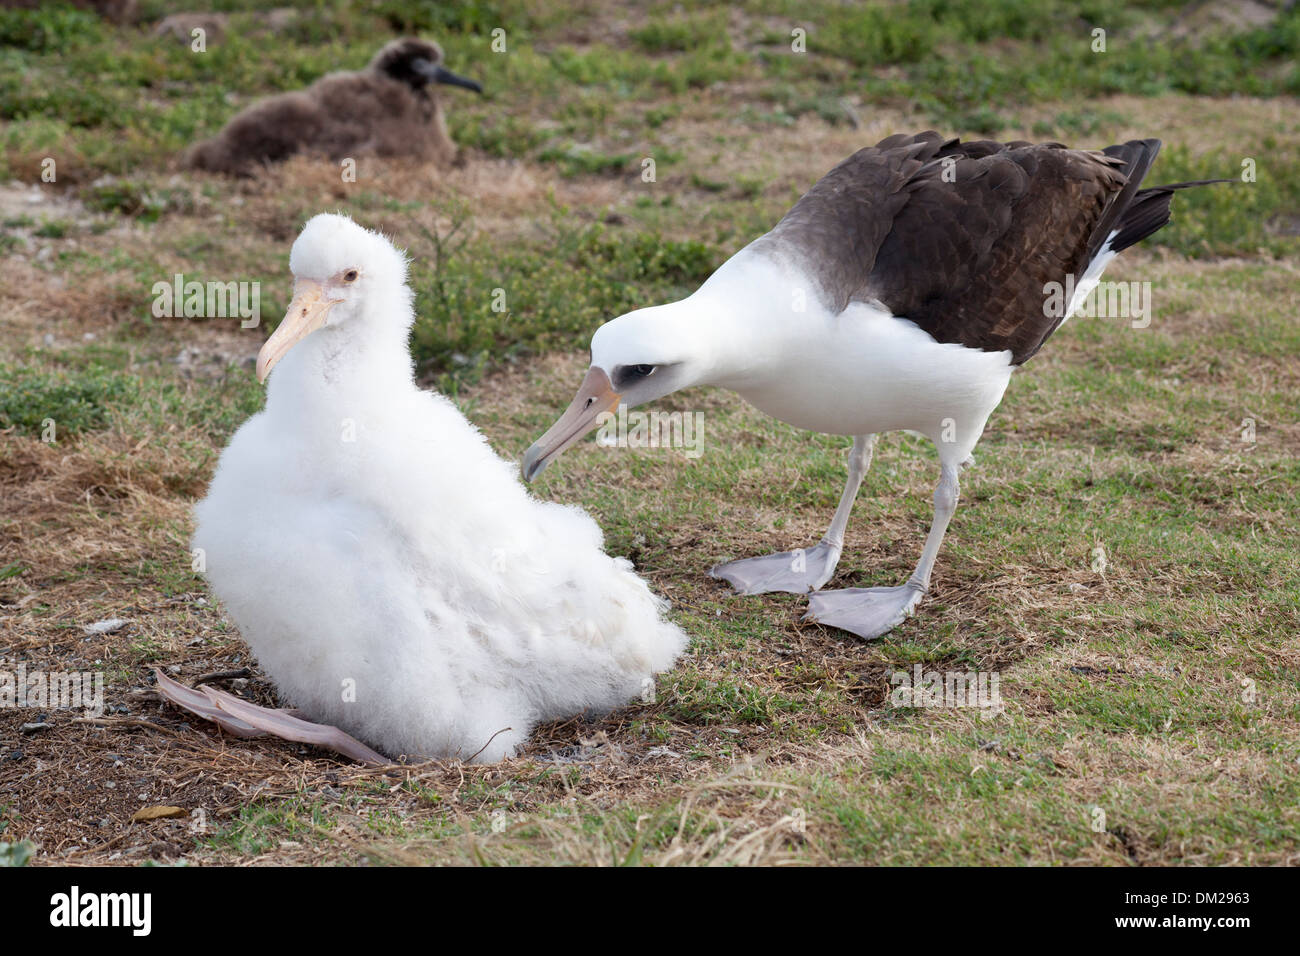 Laysan Albatross (Phoebastria immutabilis) adult appearing curious about a white leucistic chick lacking normal pigmentation - Stock Image